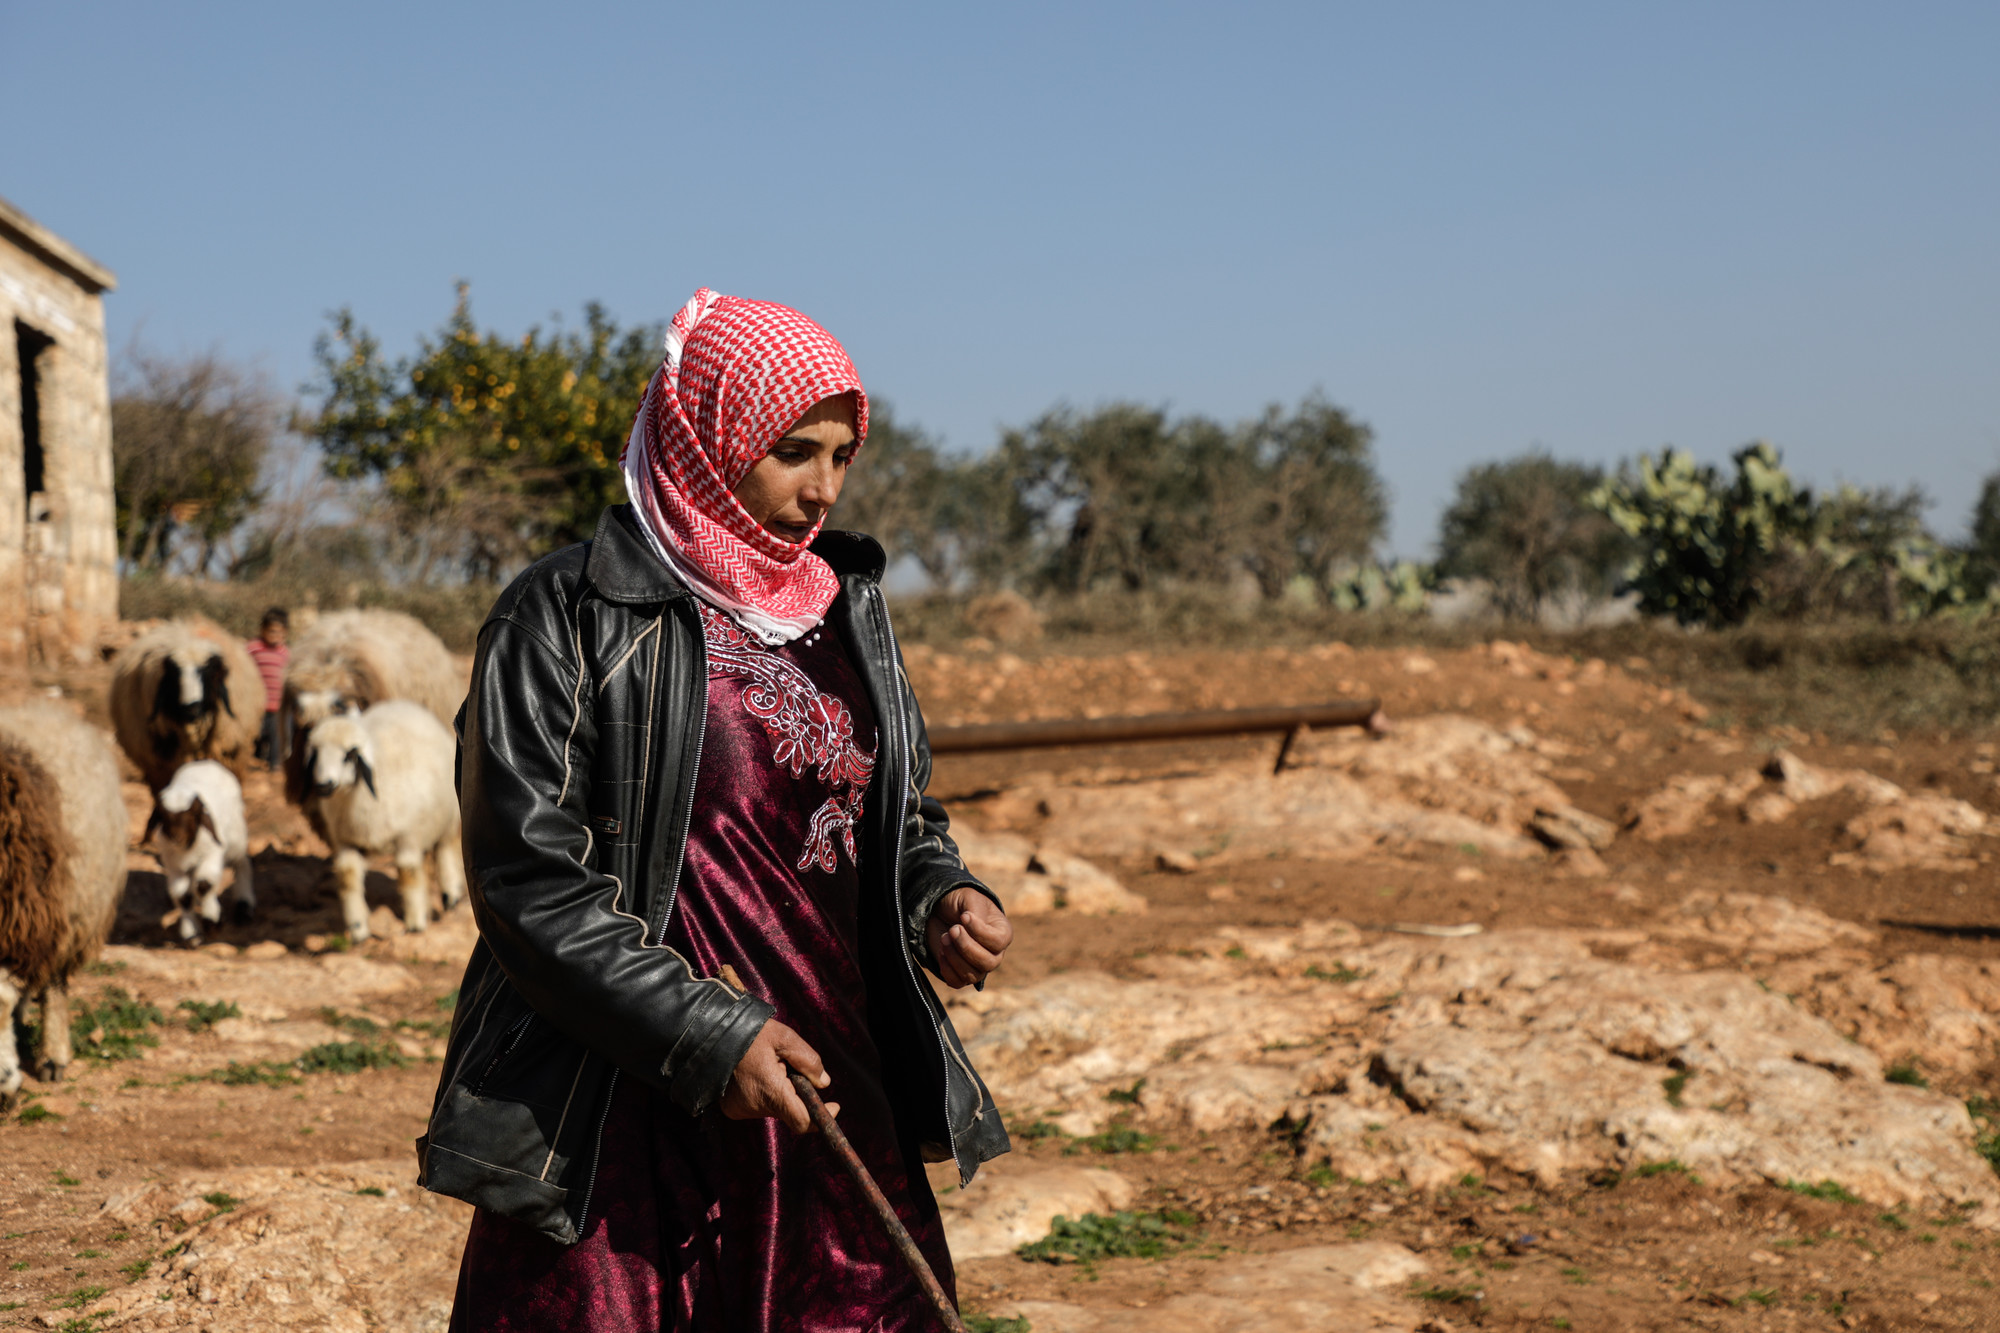 A woman holds a staff while herding sheep.